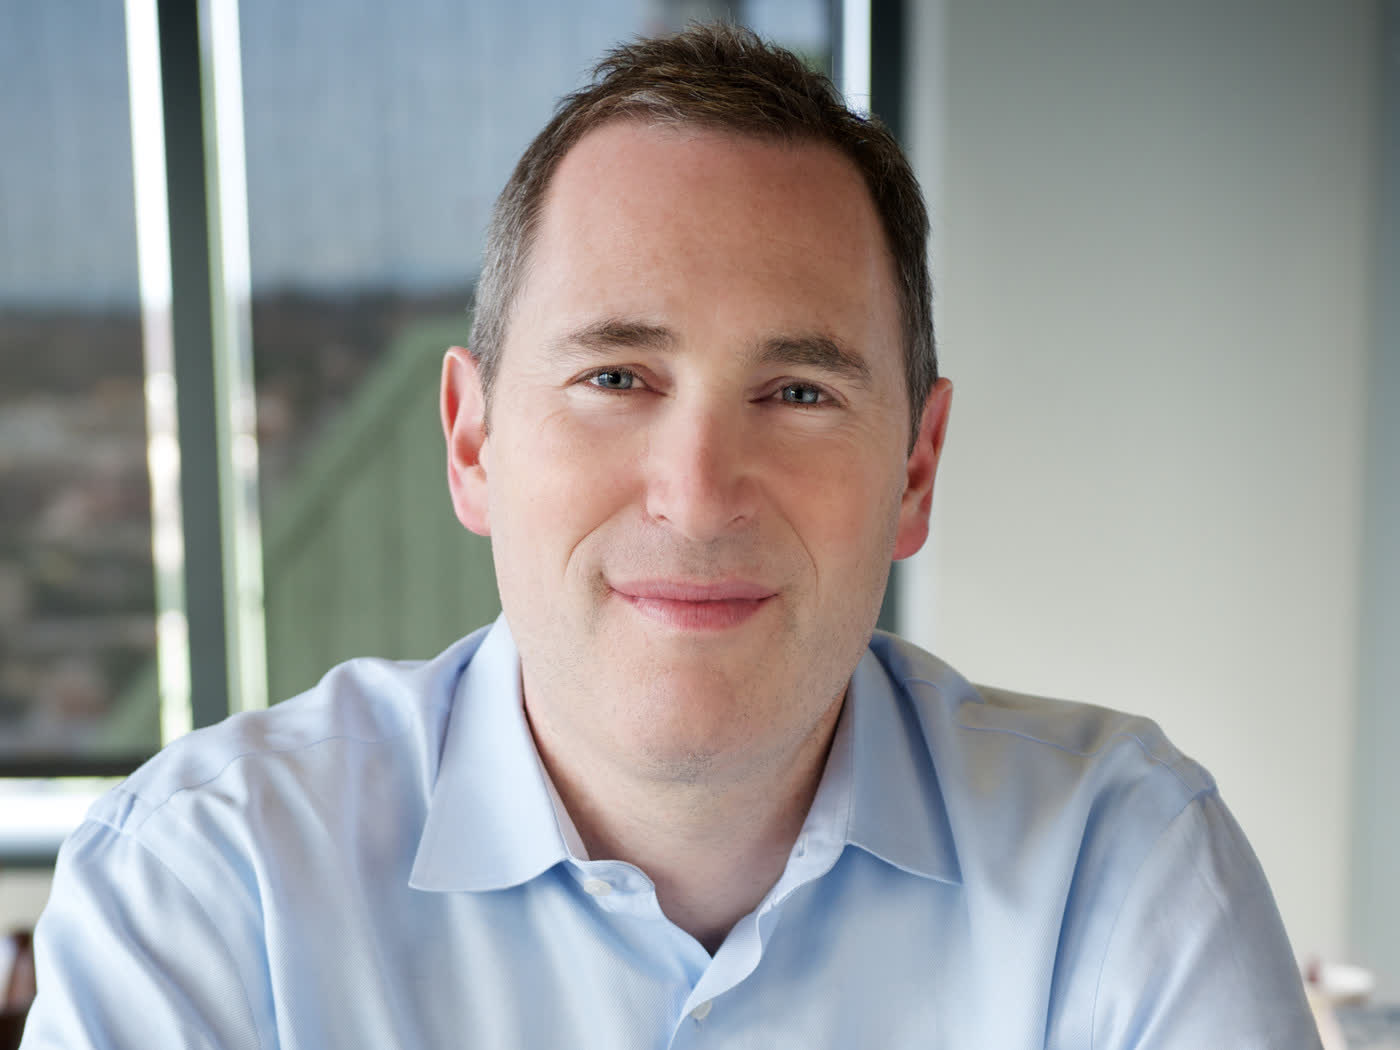 Andy Jassy will assume the role of Amazon CEO on July 5, the company's 27th anniversary